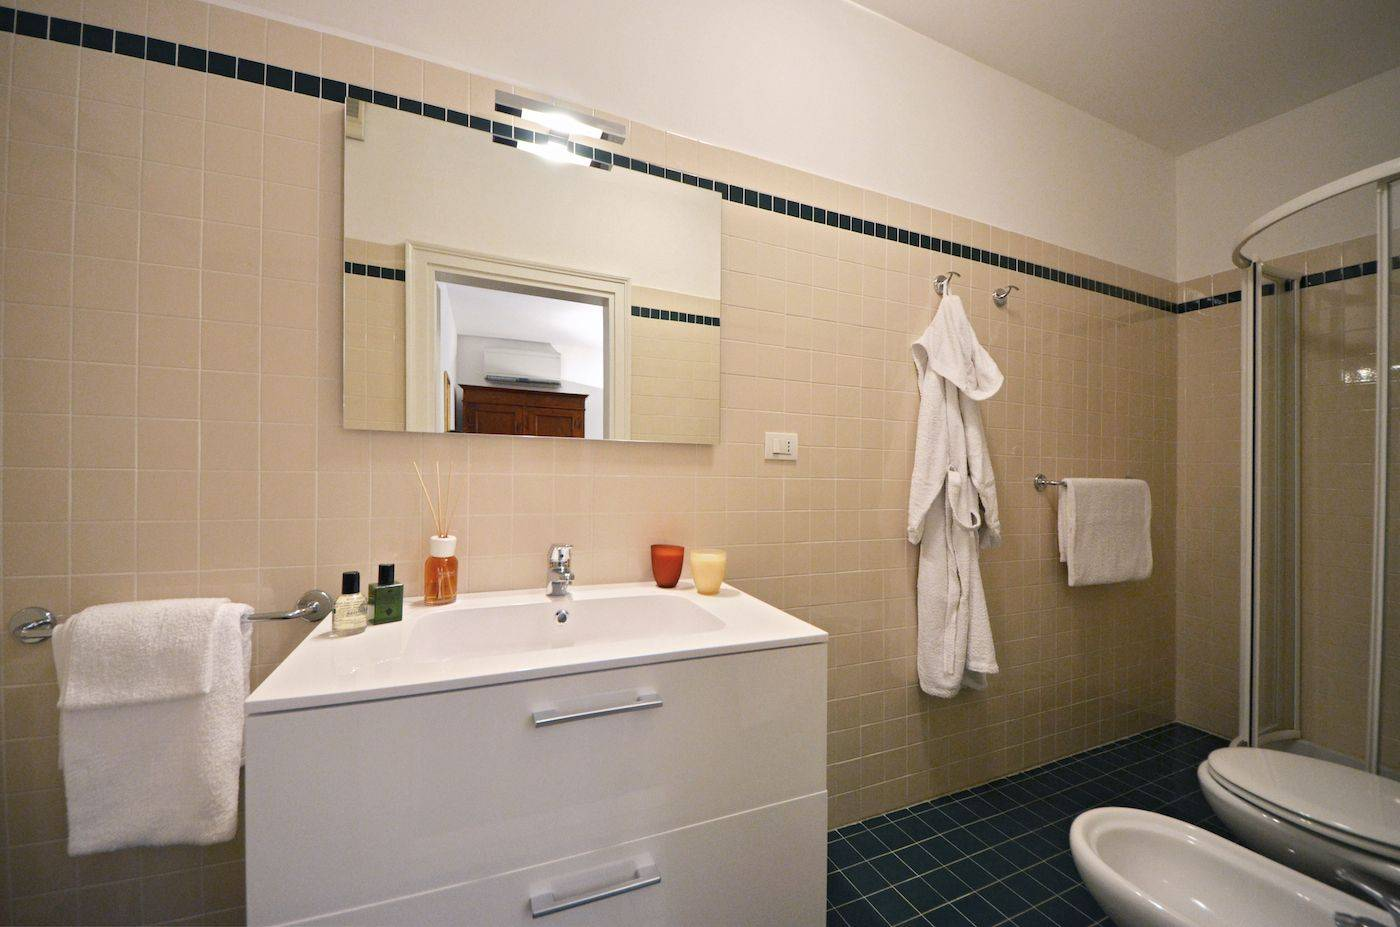 the en-suite bathroom of the second bedroom has a shower cabin